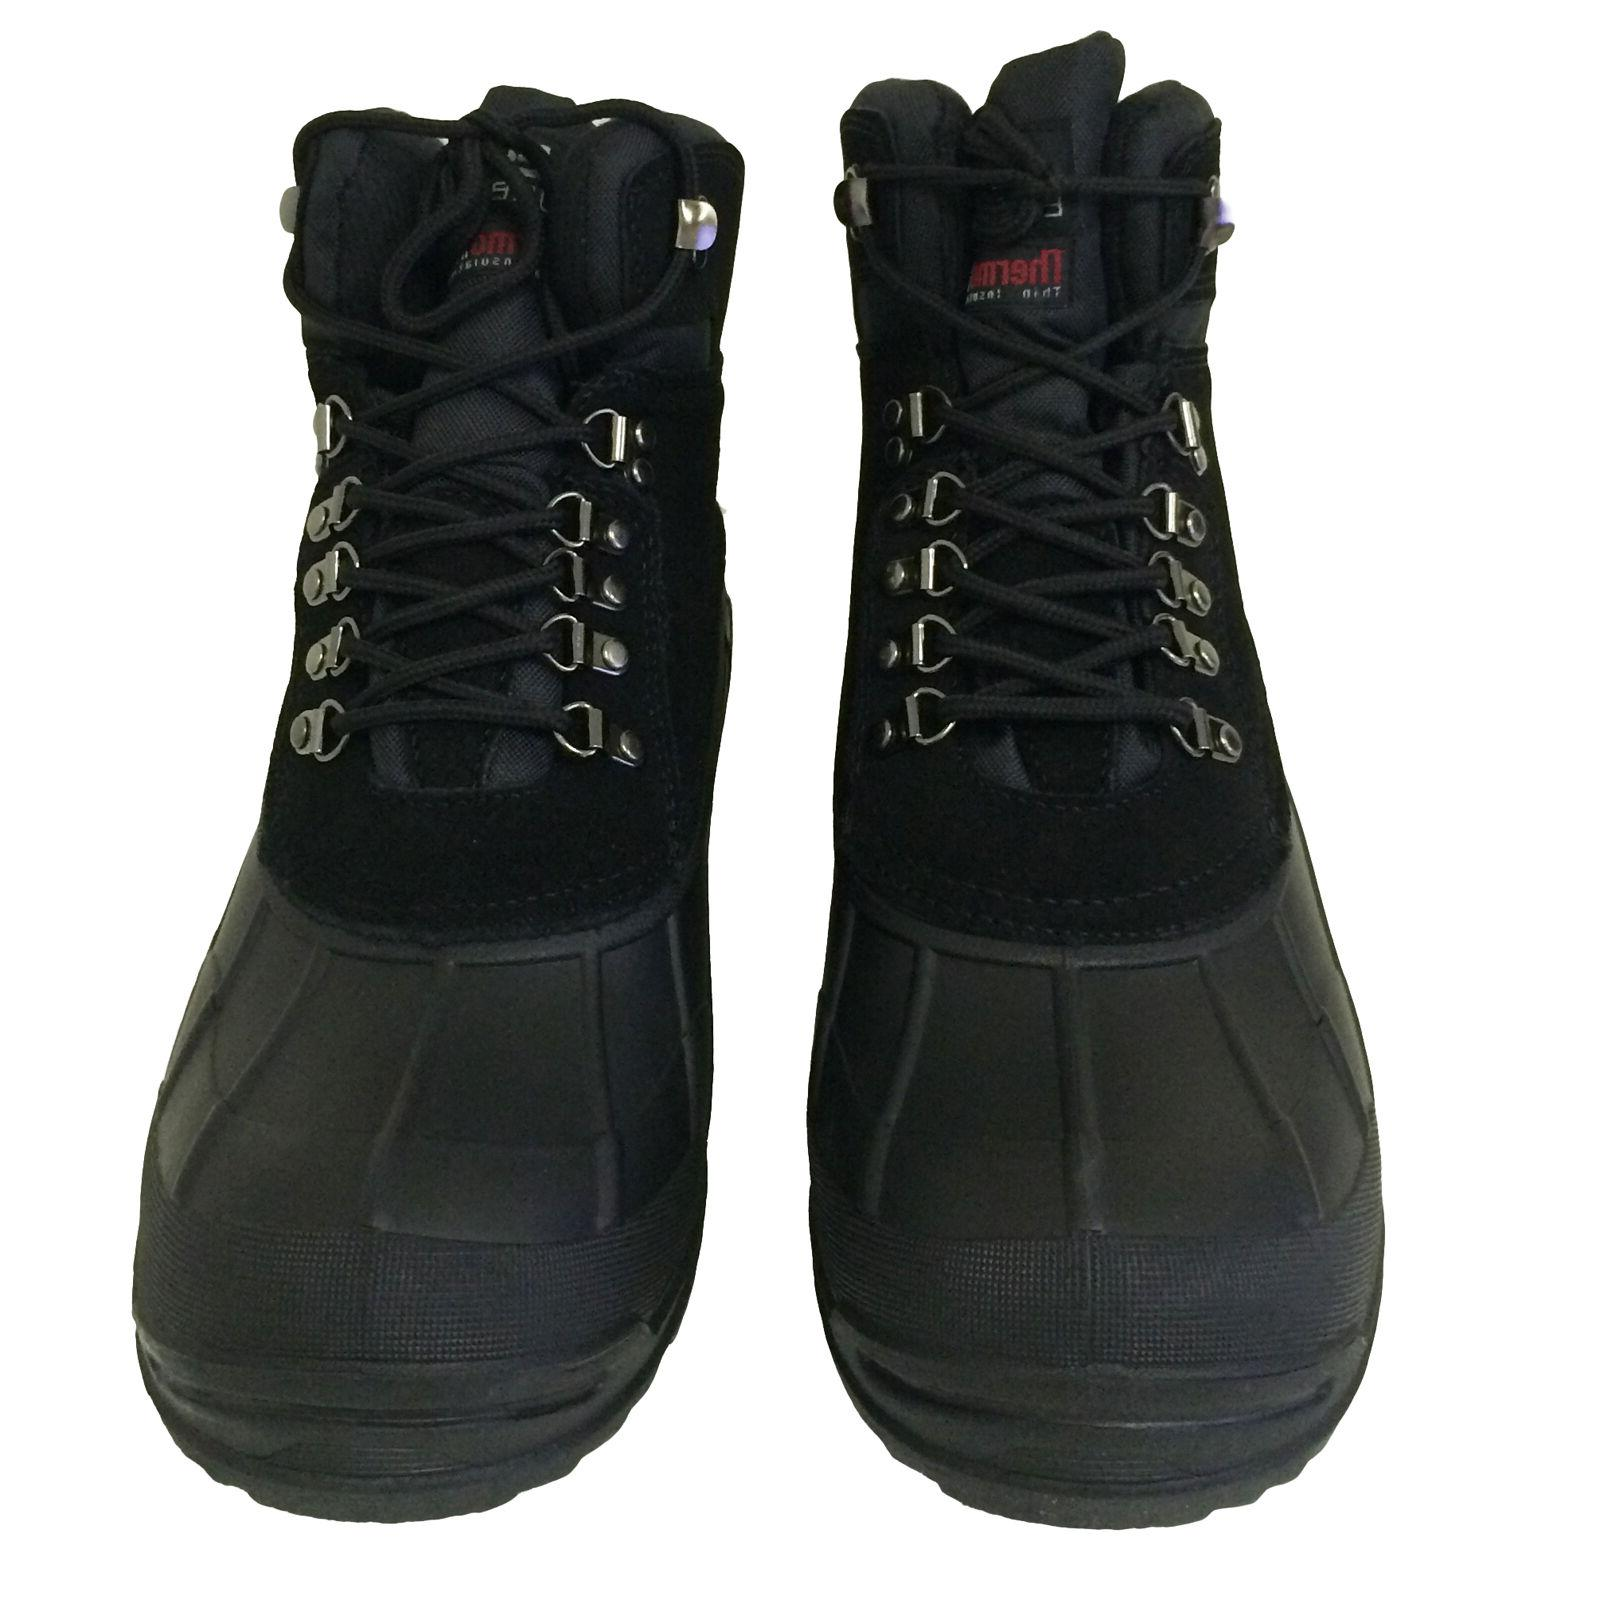 Brand New Boots Warm Insulated Hiking Sizes